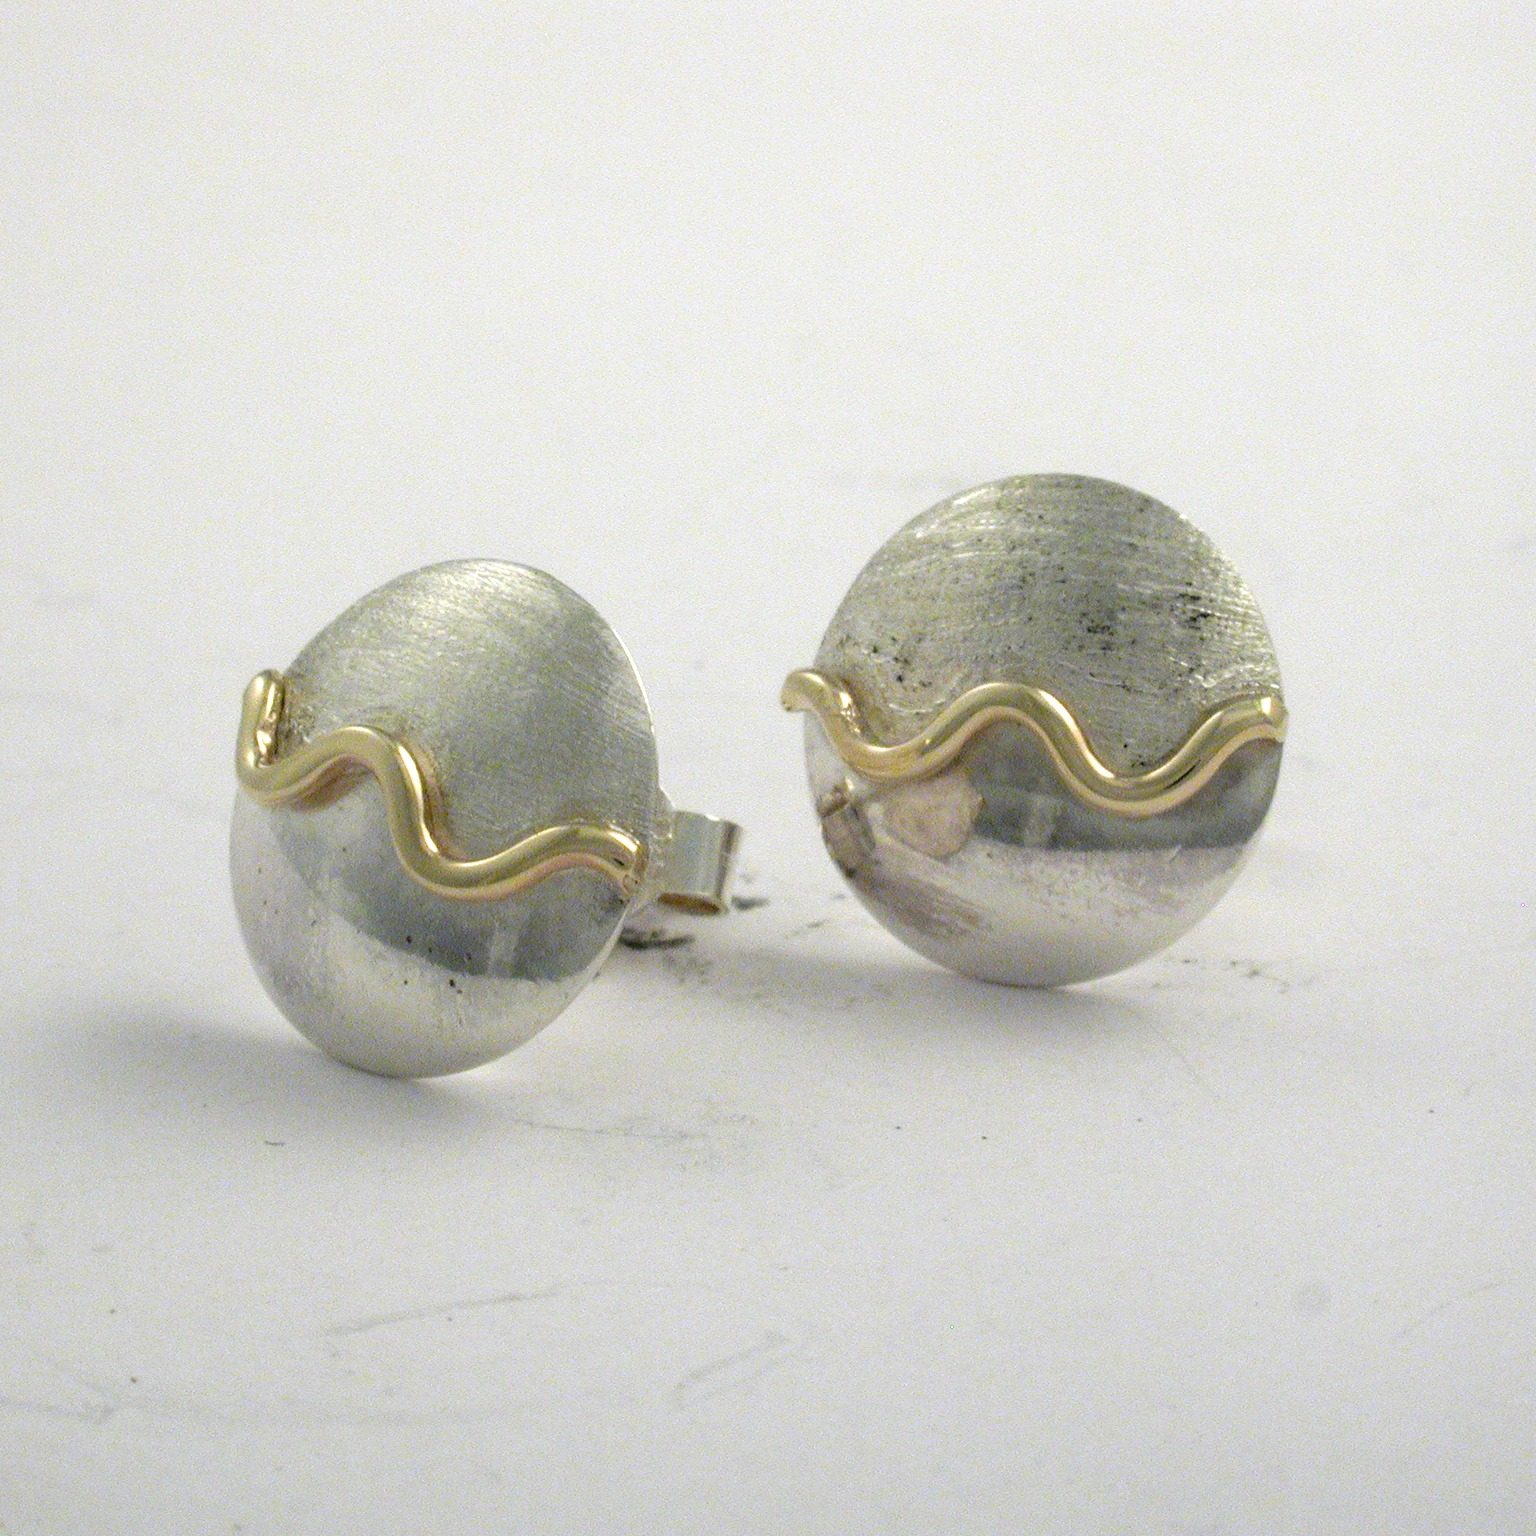 Creativity Wave Stud Earrings 4